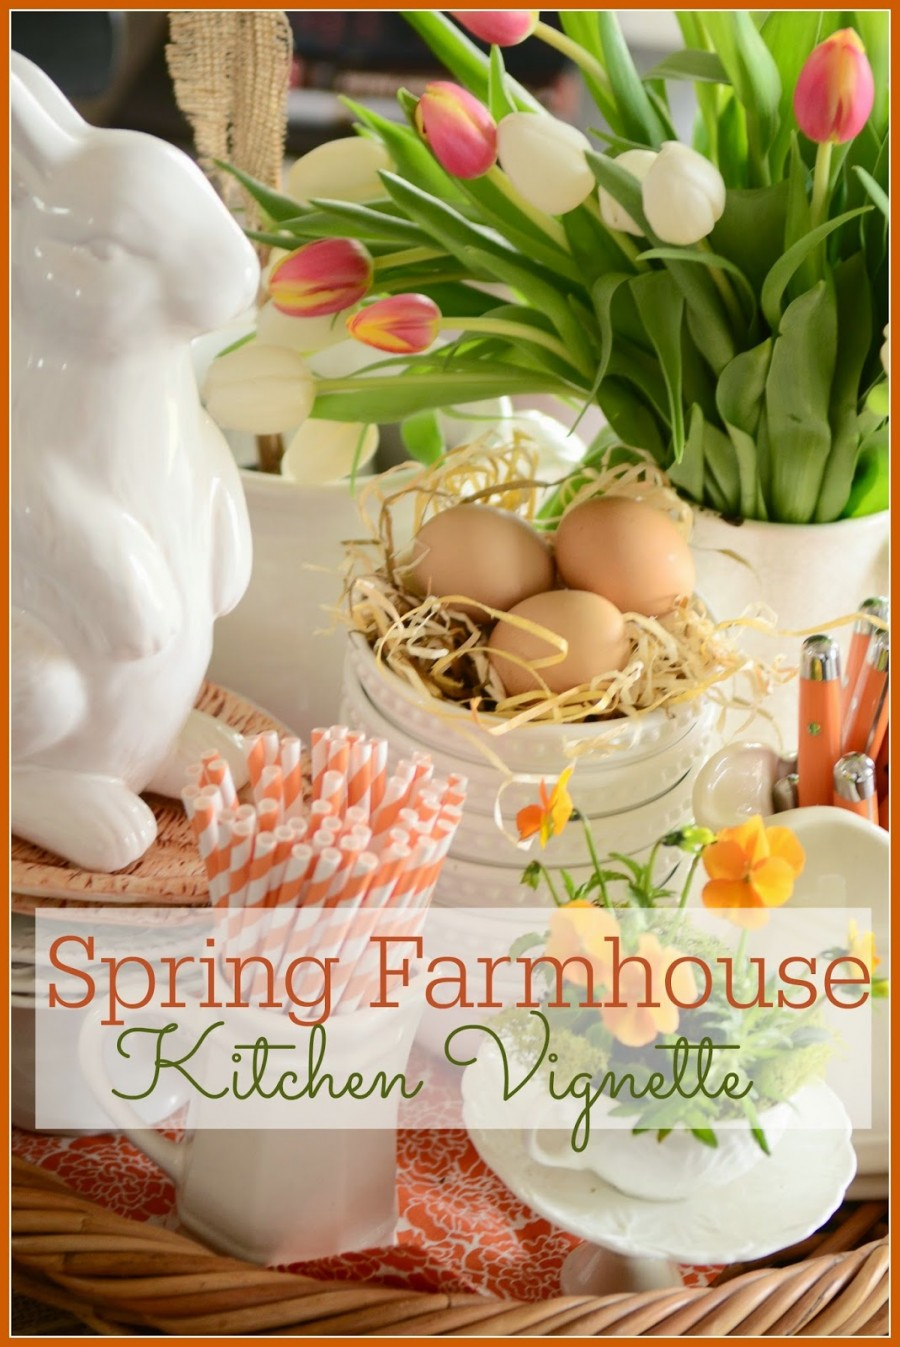 SPRING FARMHOUSE KITCHEN VIGNETTE